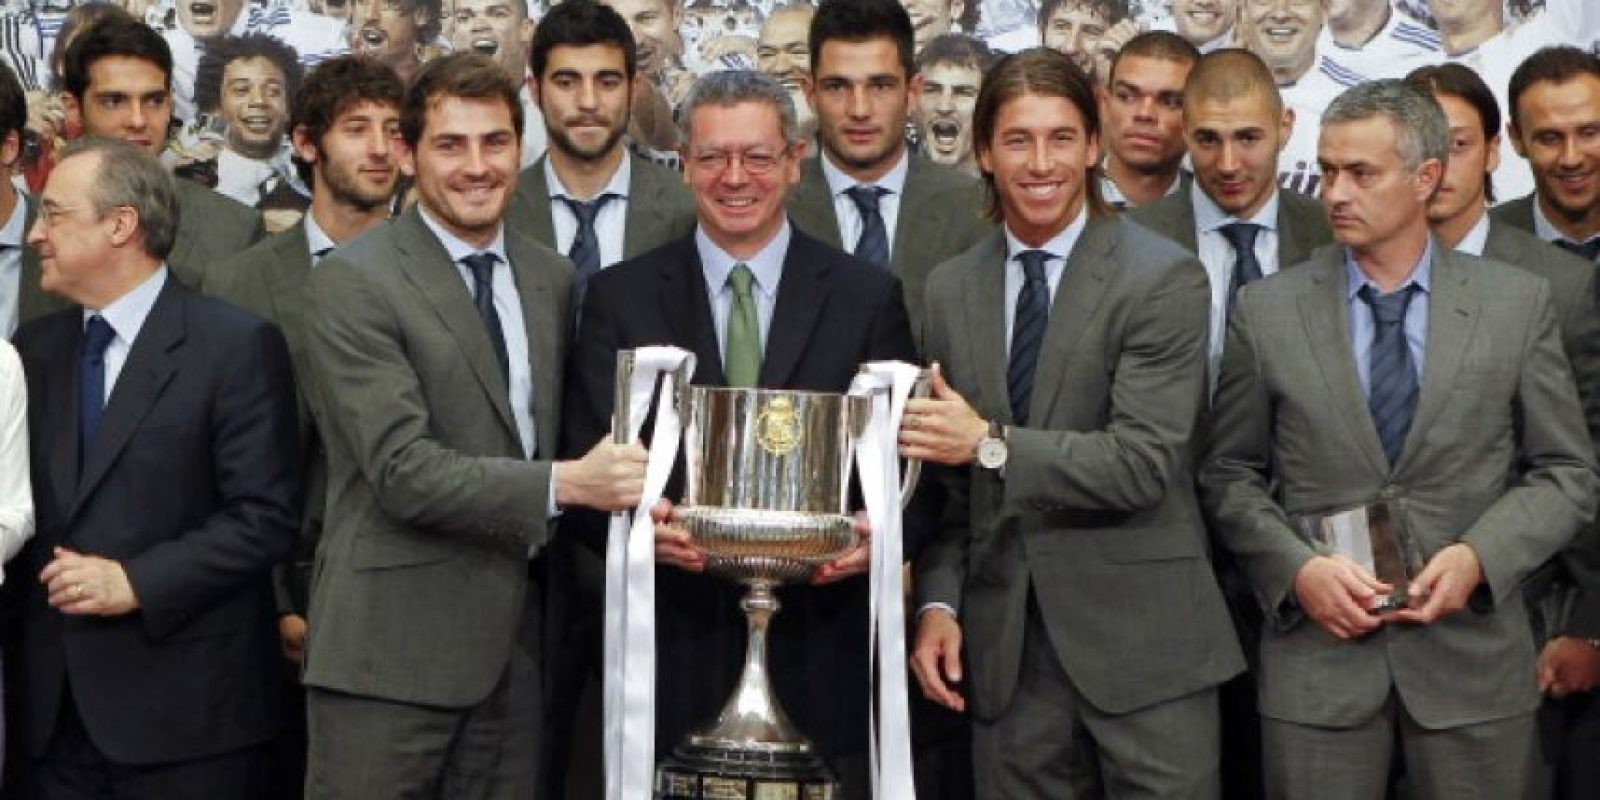 En el Real Madrid ganó una Copa del Rey en 2011. Foto: Getty Images